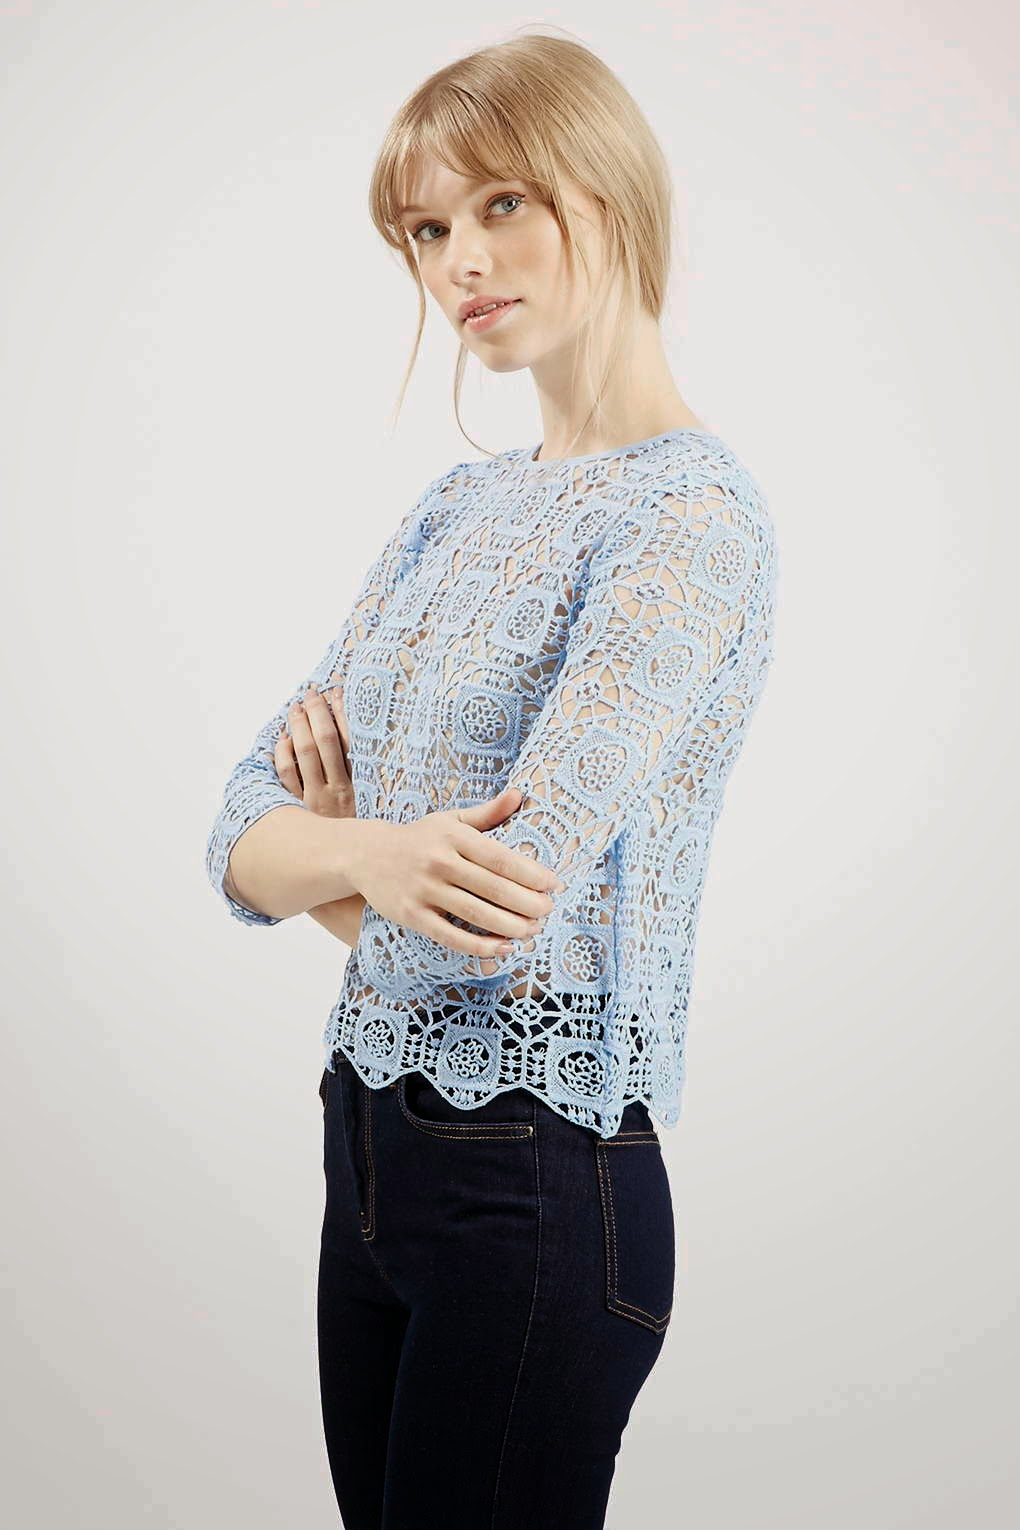 pastel crochet top, crochet scallop top, pale blue topshop top,